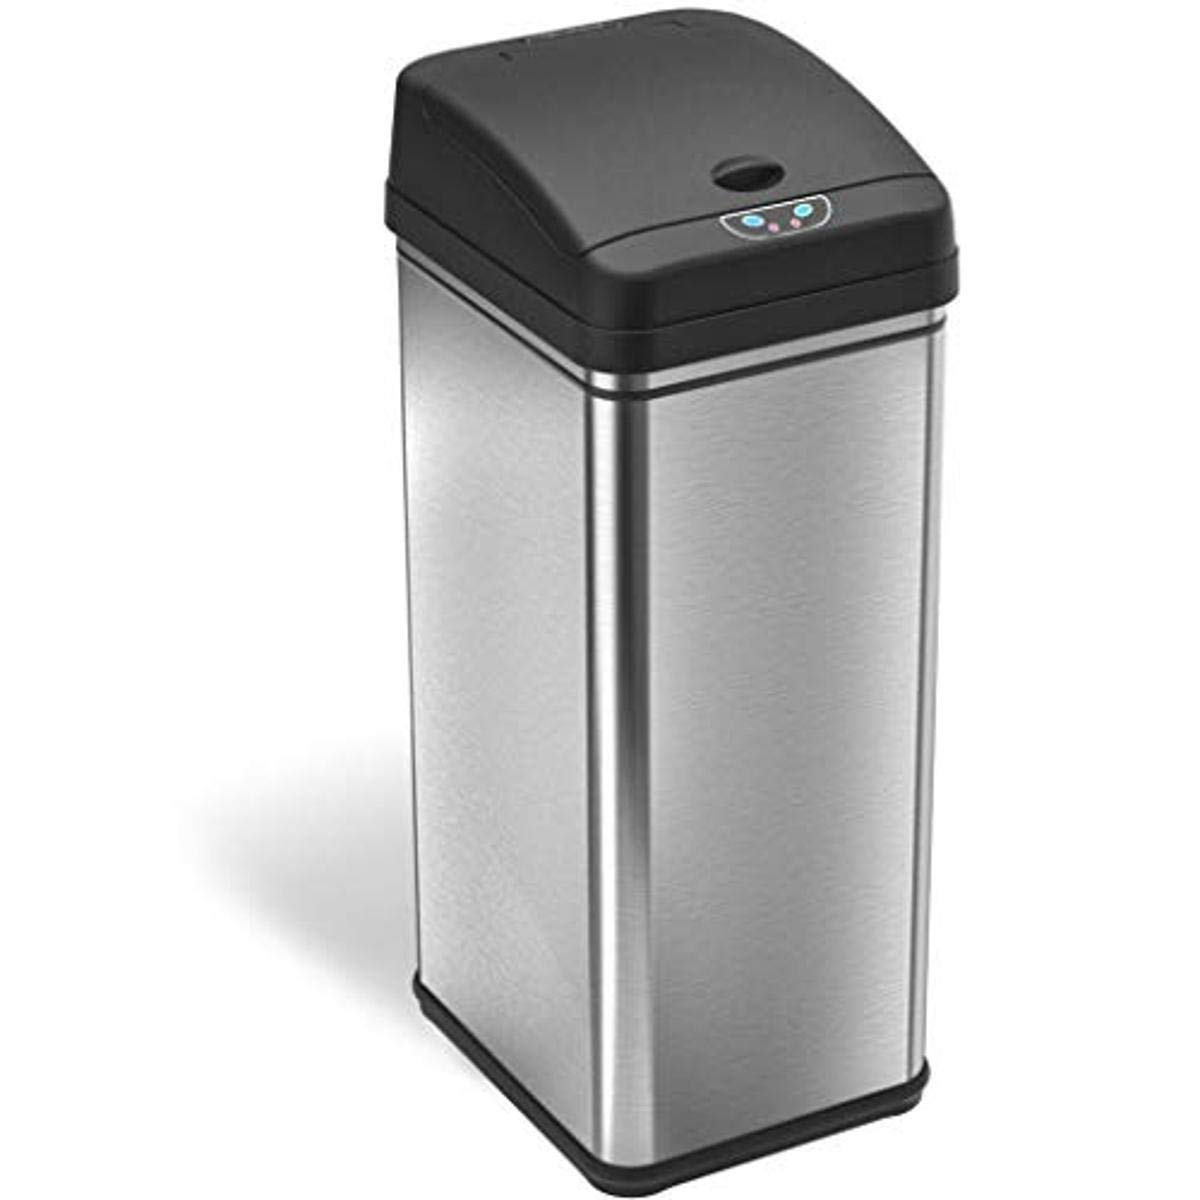 iTouchless 13 Gallon Pet-Proof Sensor Trash Can with AbsorbX Odor Filter Kitchen Garbage Bin Prevents Dogs & Cats Getting in, Battery and AC Adapter (Not Included)